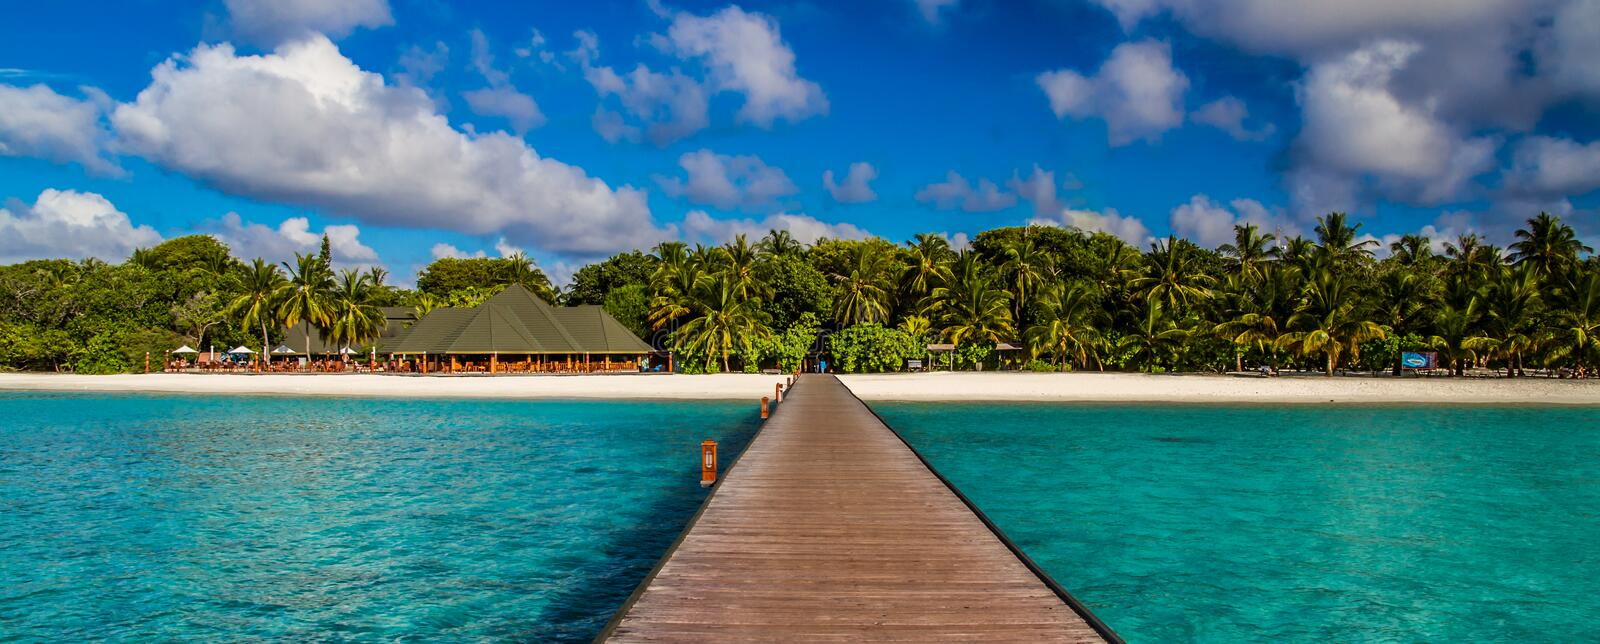 Maldives beach panorama under the blue sky stock images